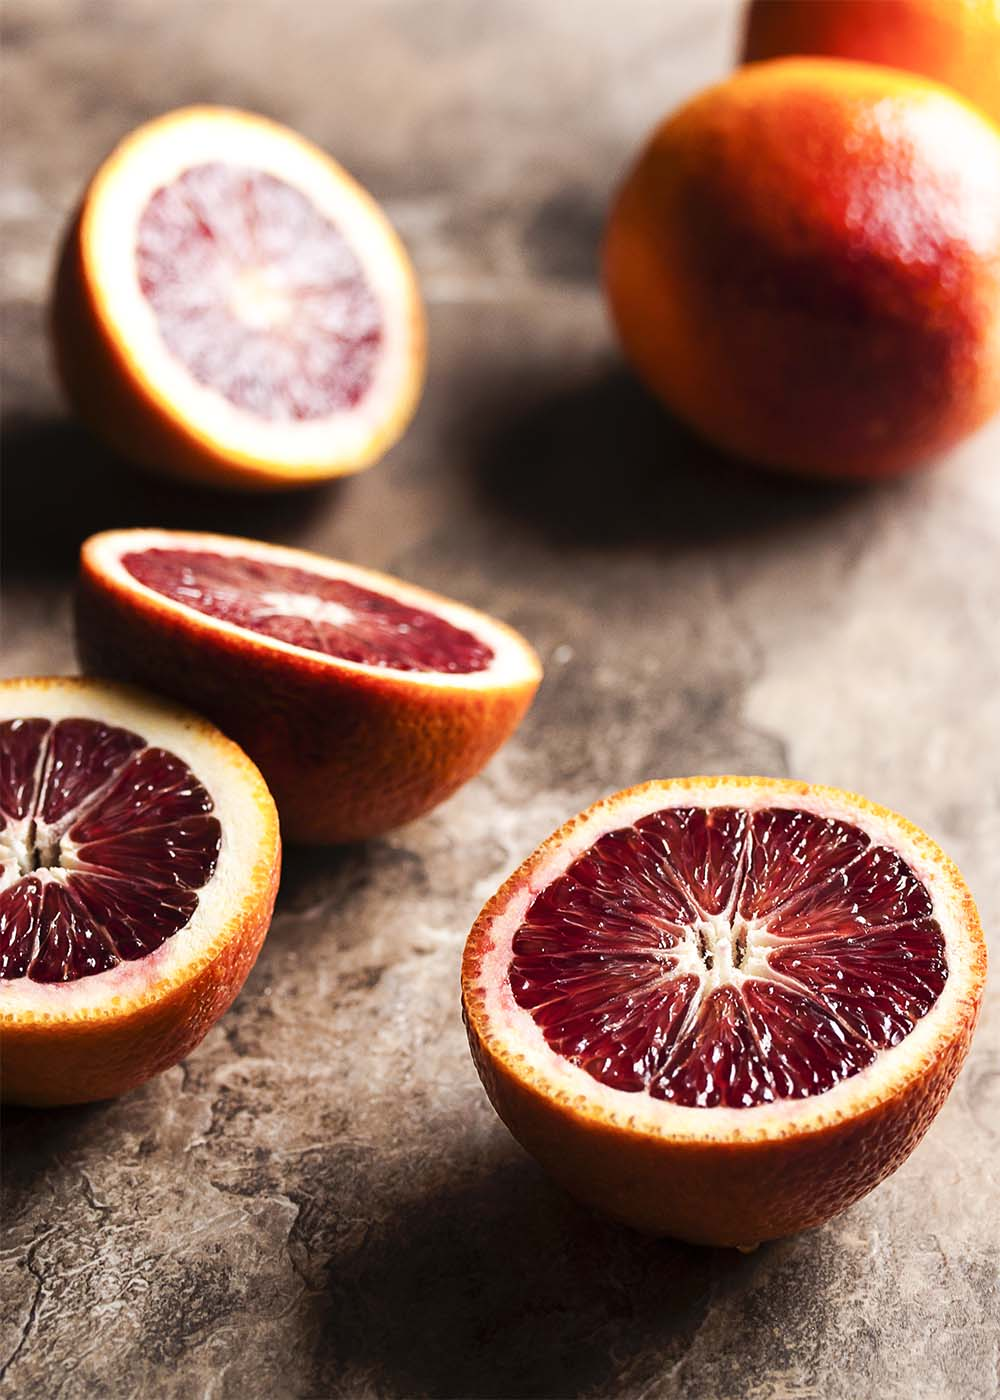 Cut blood oranges on a table showing the deep red color of flesh.